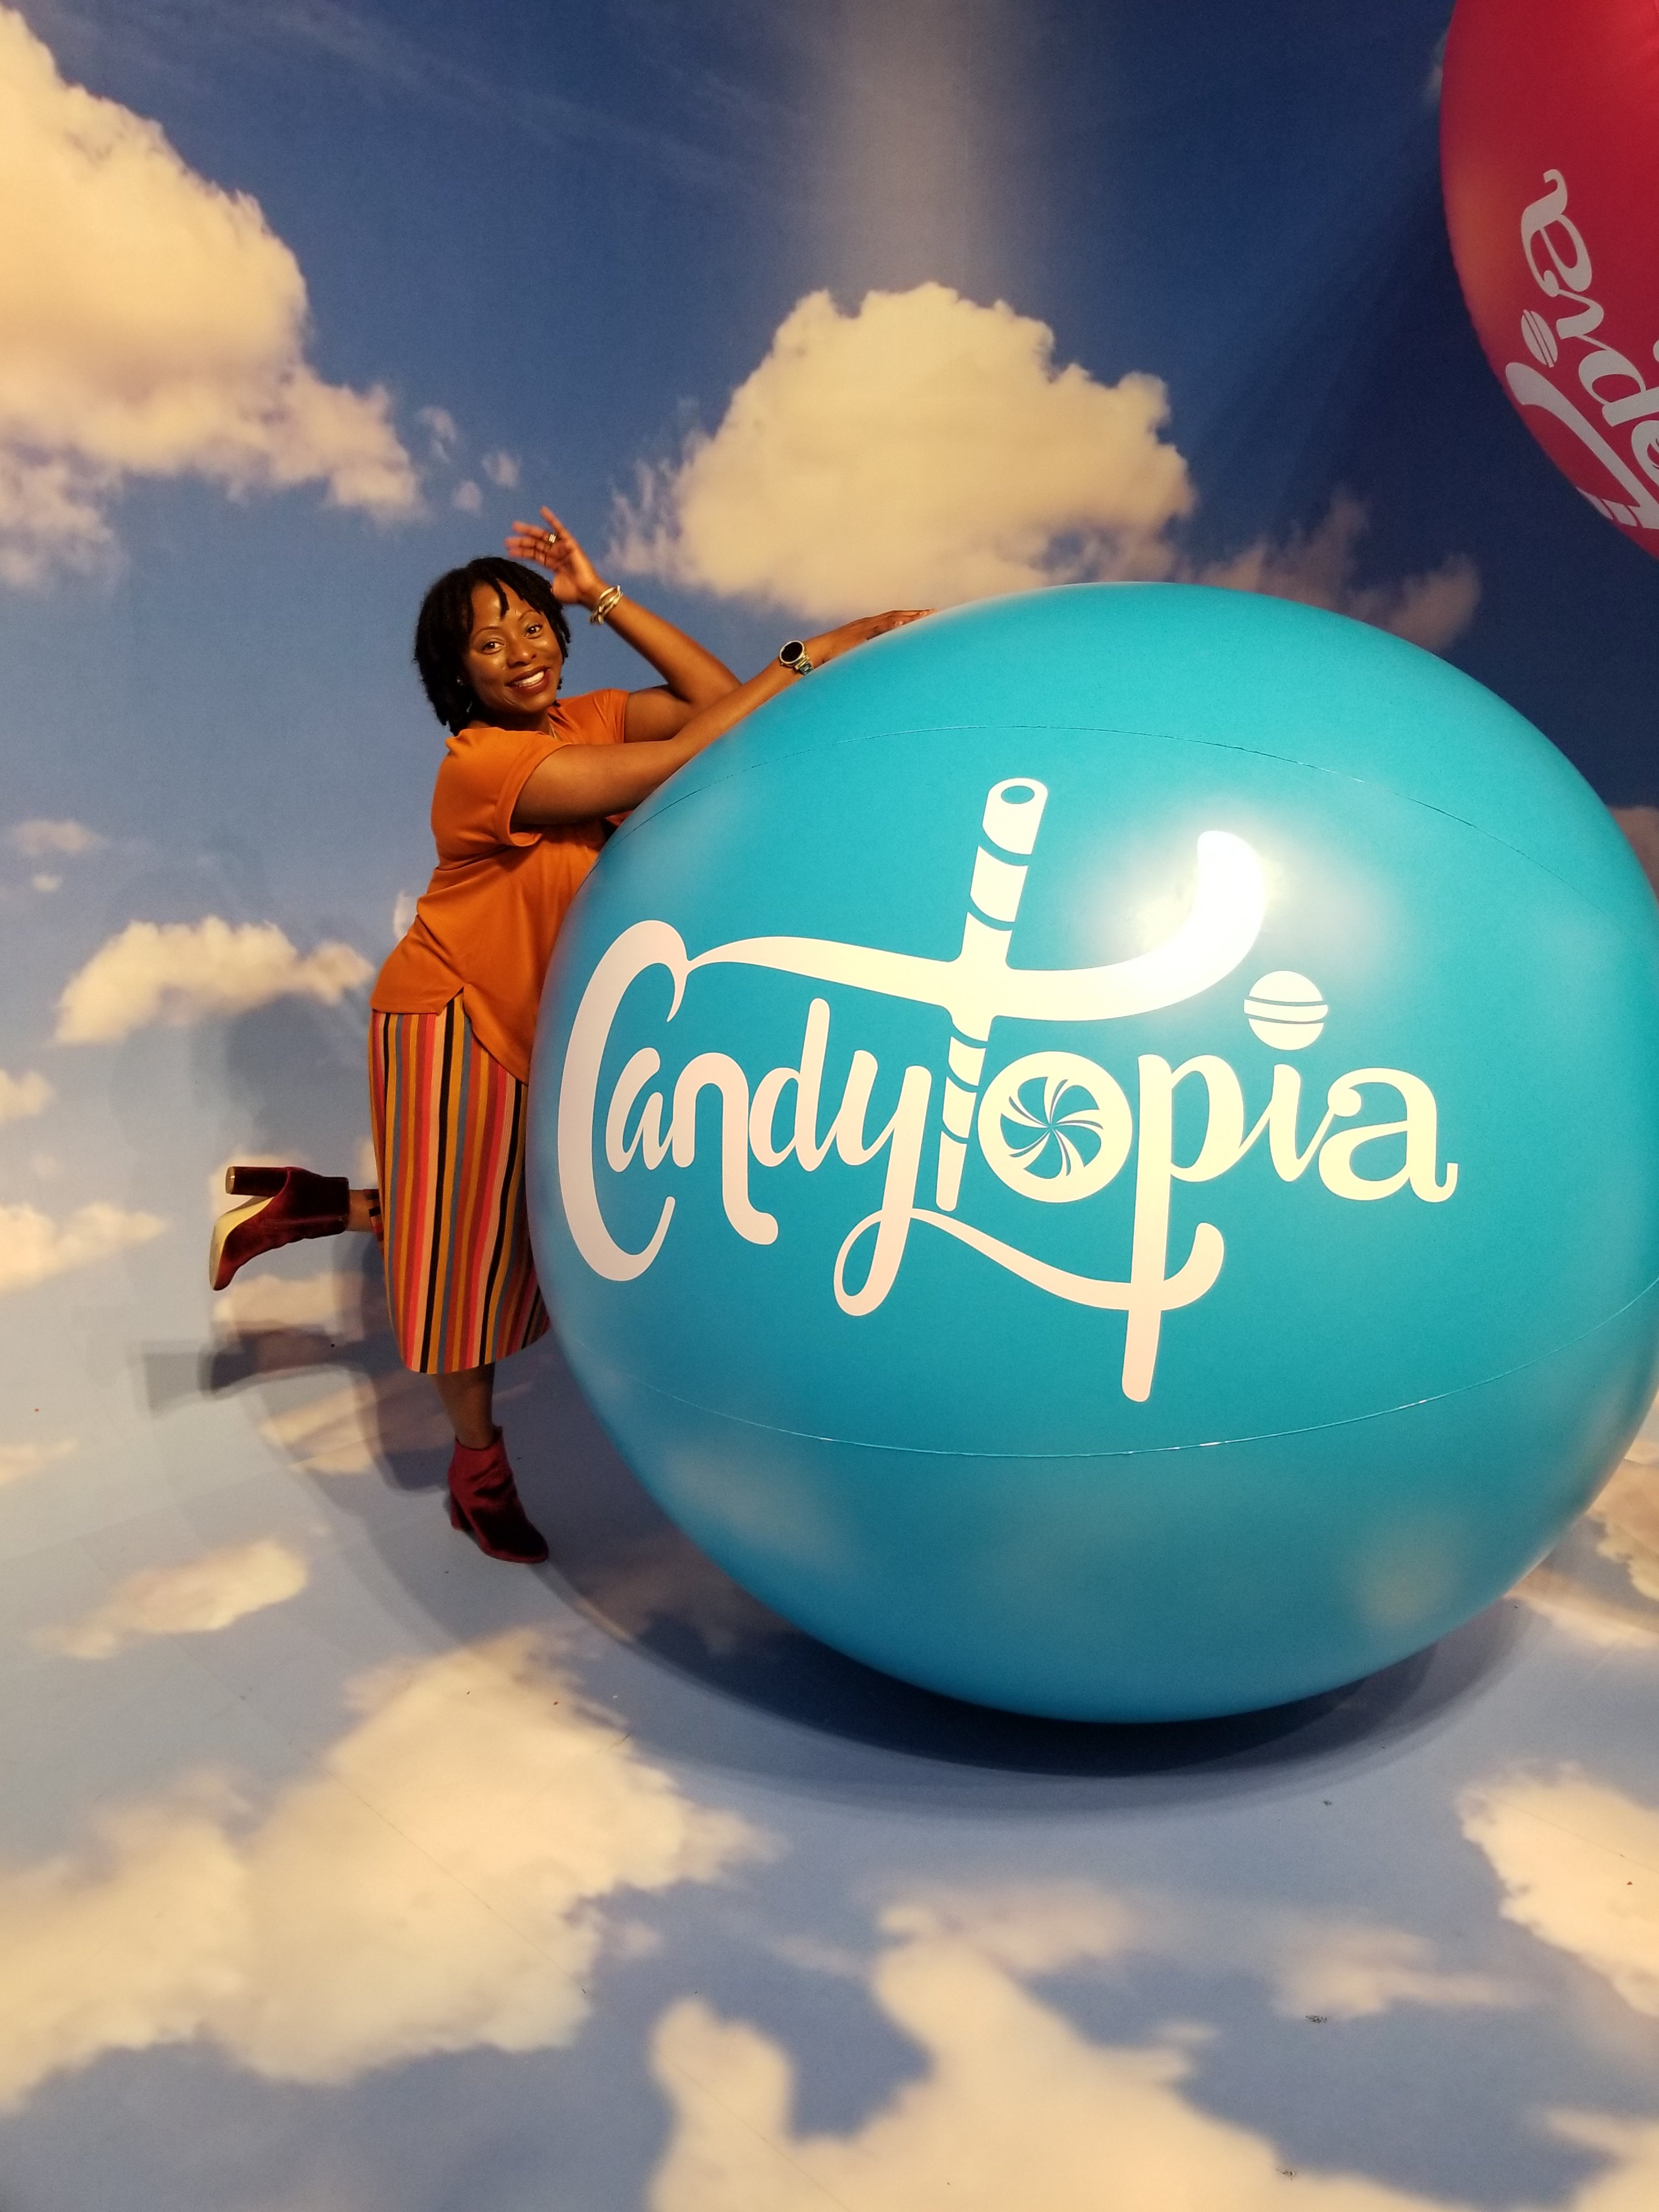 Get your ticket to CandyTopia